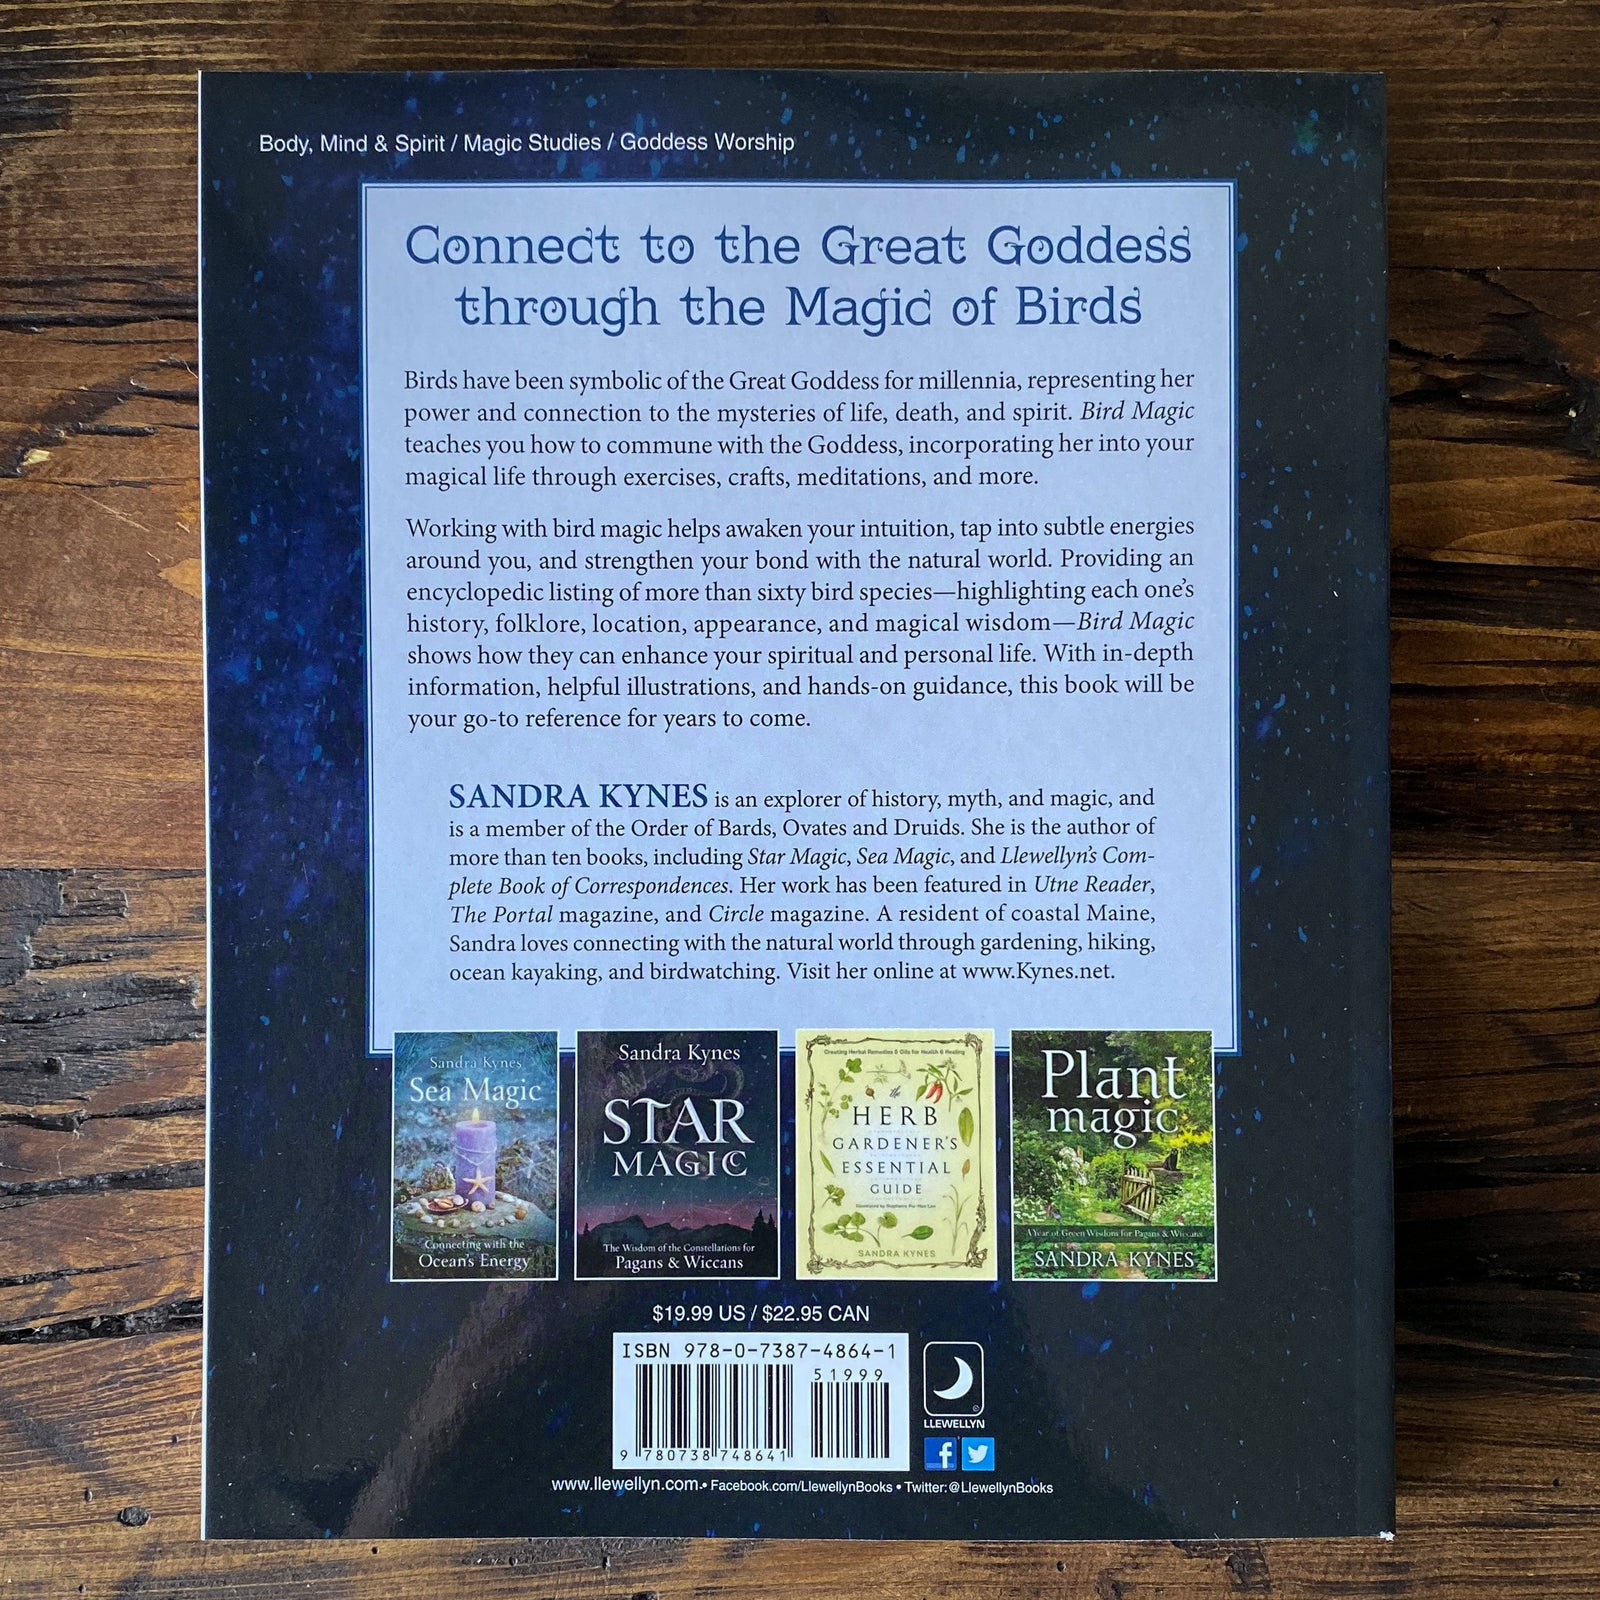 Bird Magic - Wisdom of the Ancient Goddess for Pagans & Wiccans